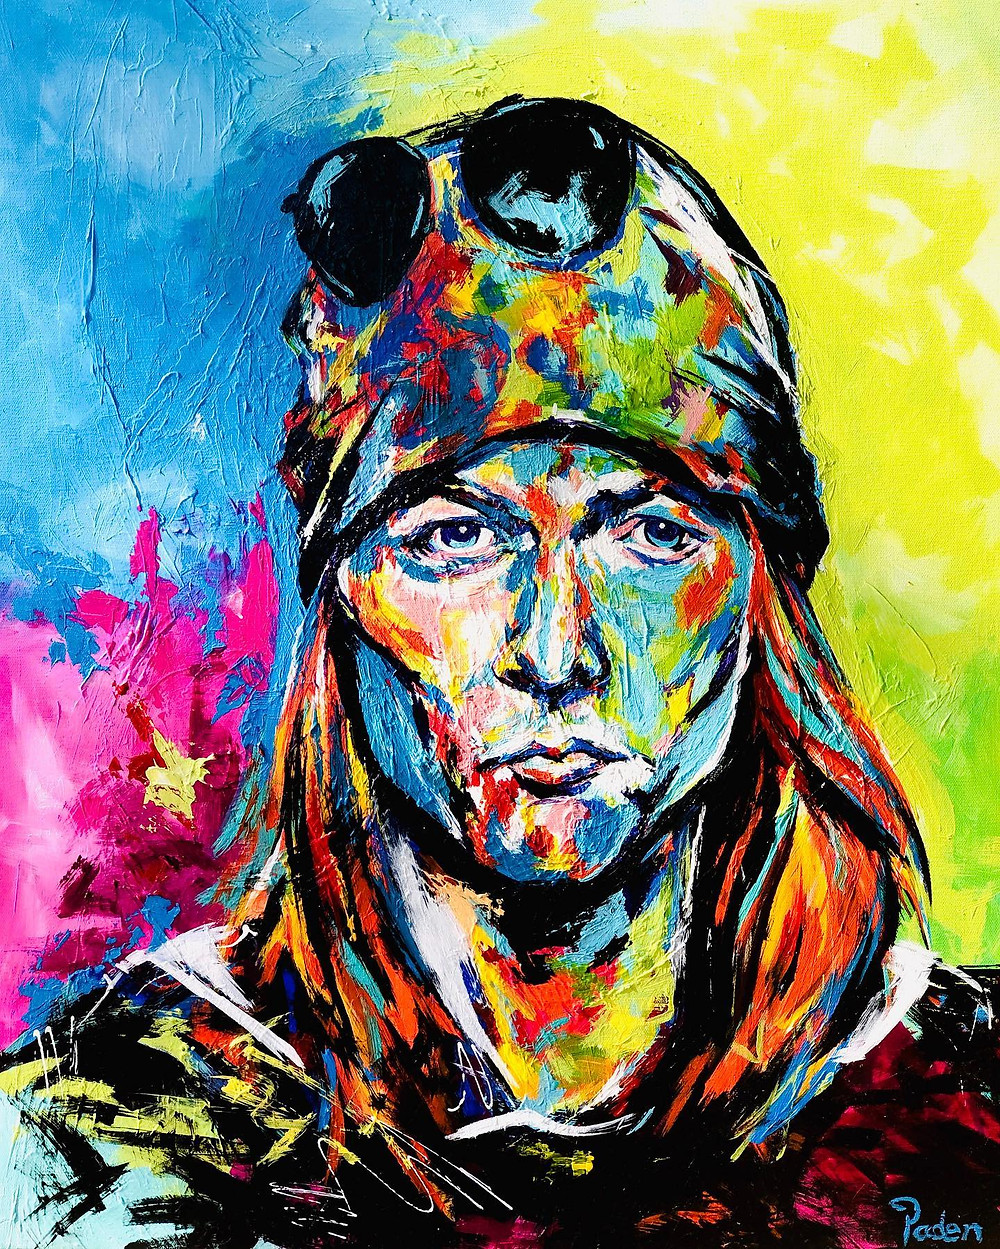 Portrait of Axl Rose by Oklahoma artist, Matthew R. Paden